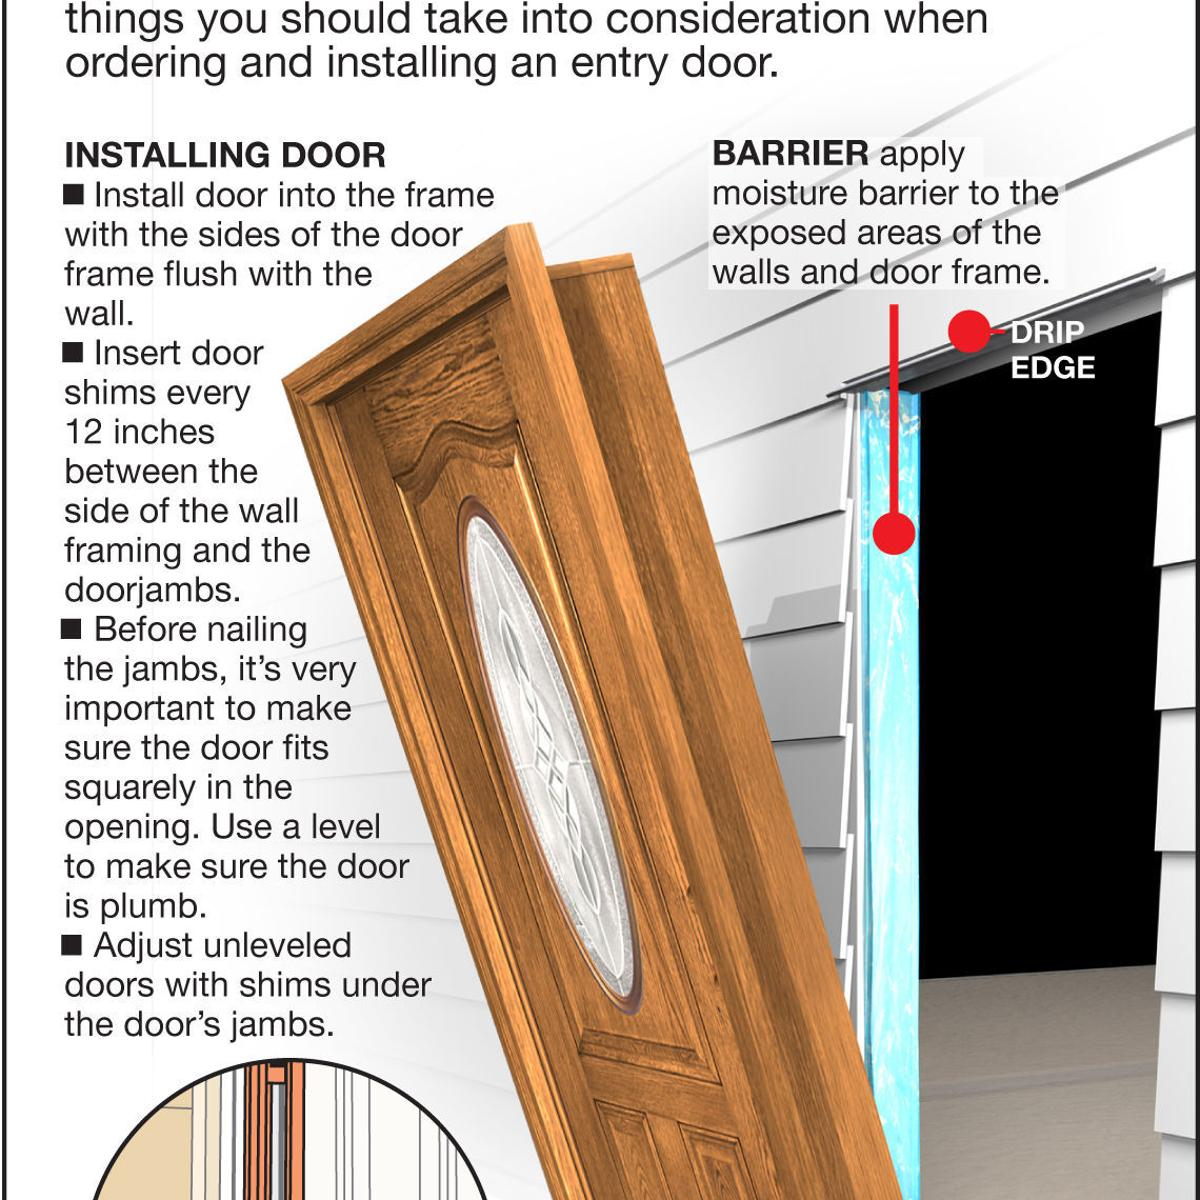 Install A New Exterior Door And Frame Siouxland Homes Siouxcityjournal